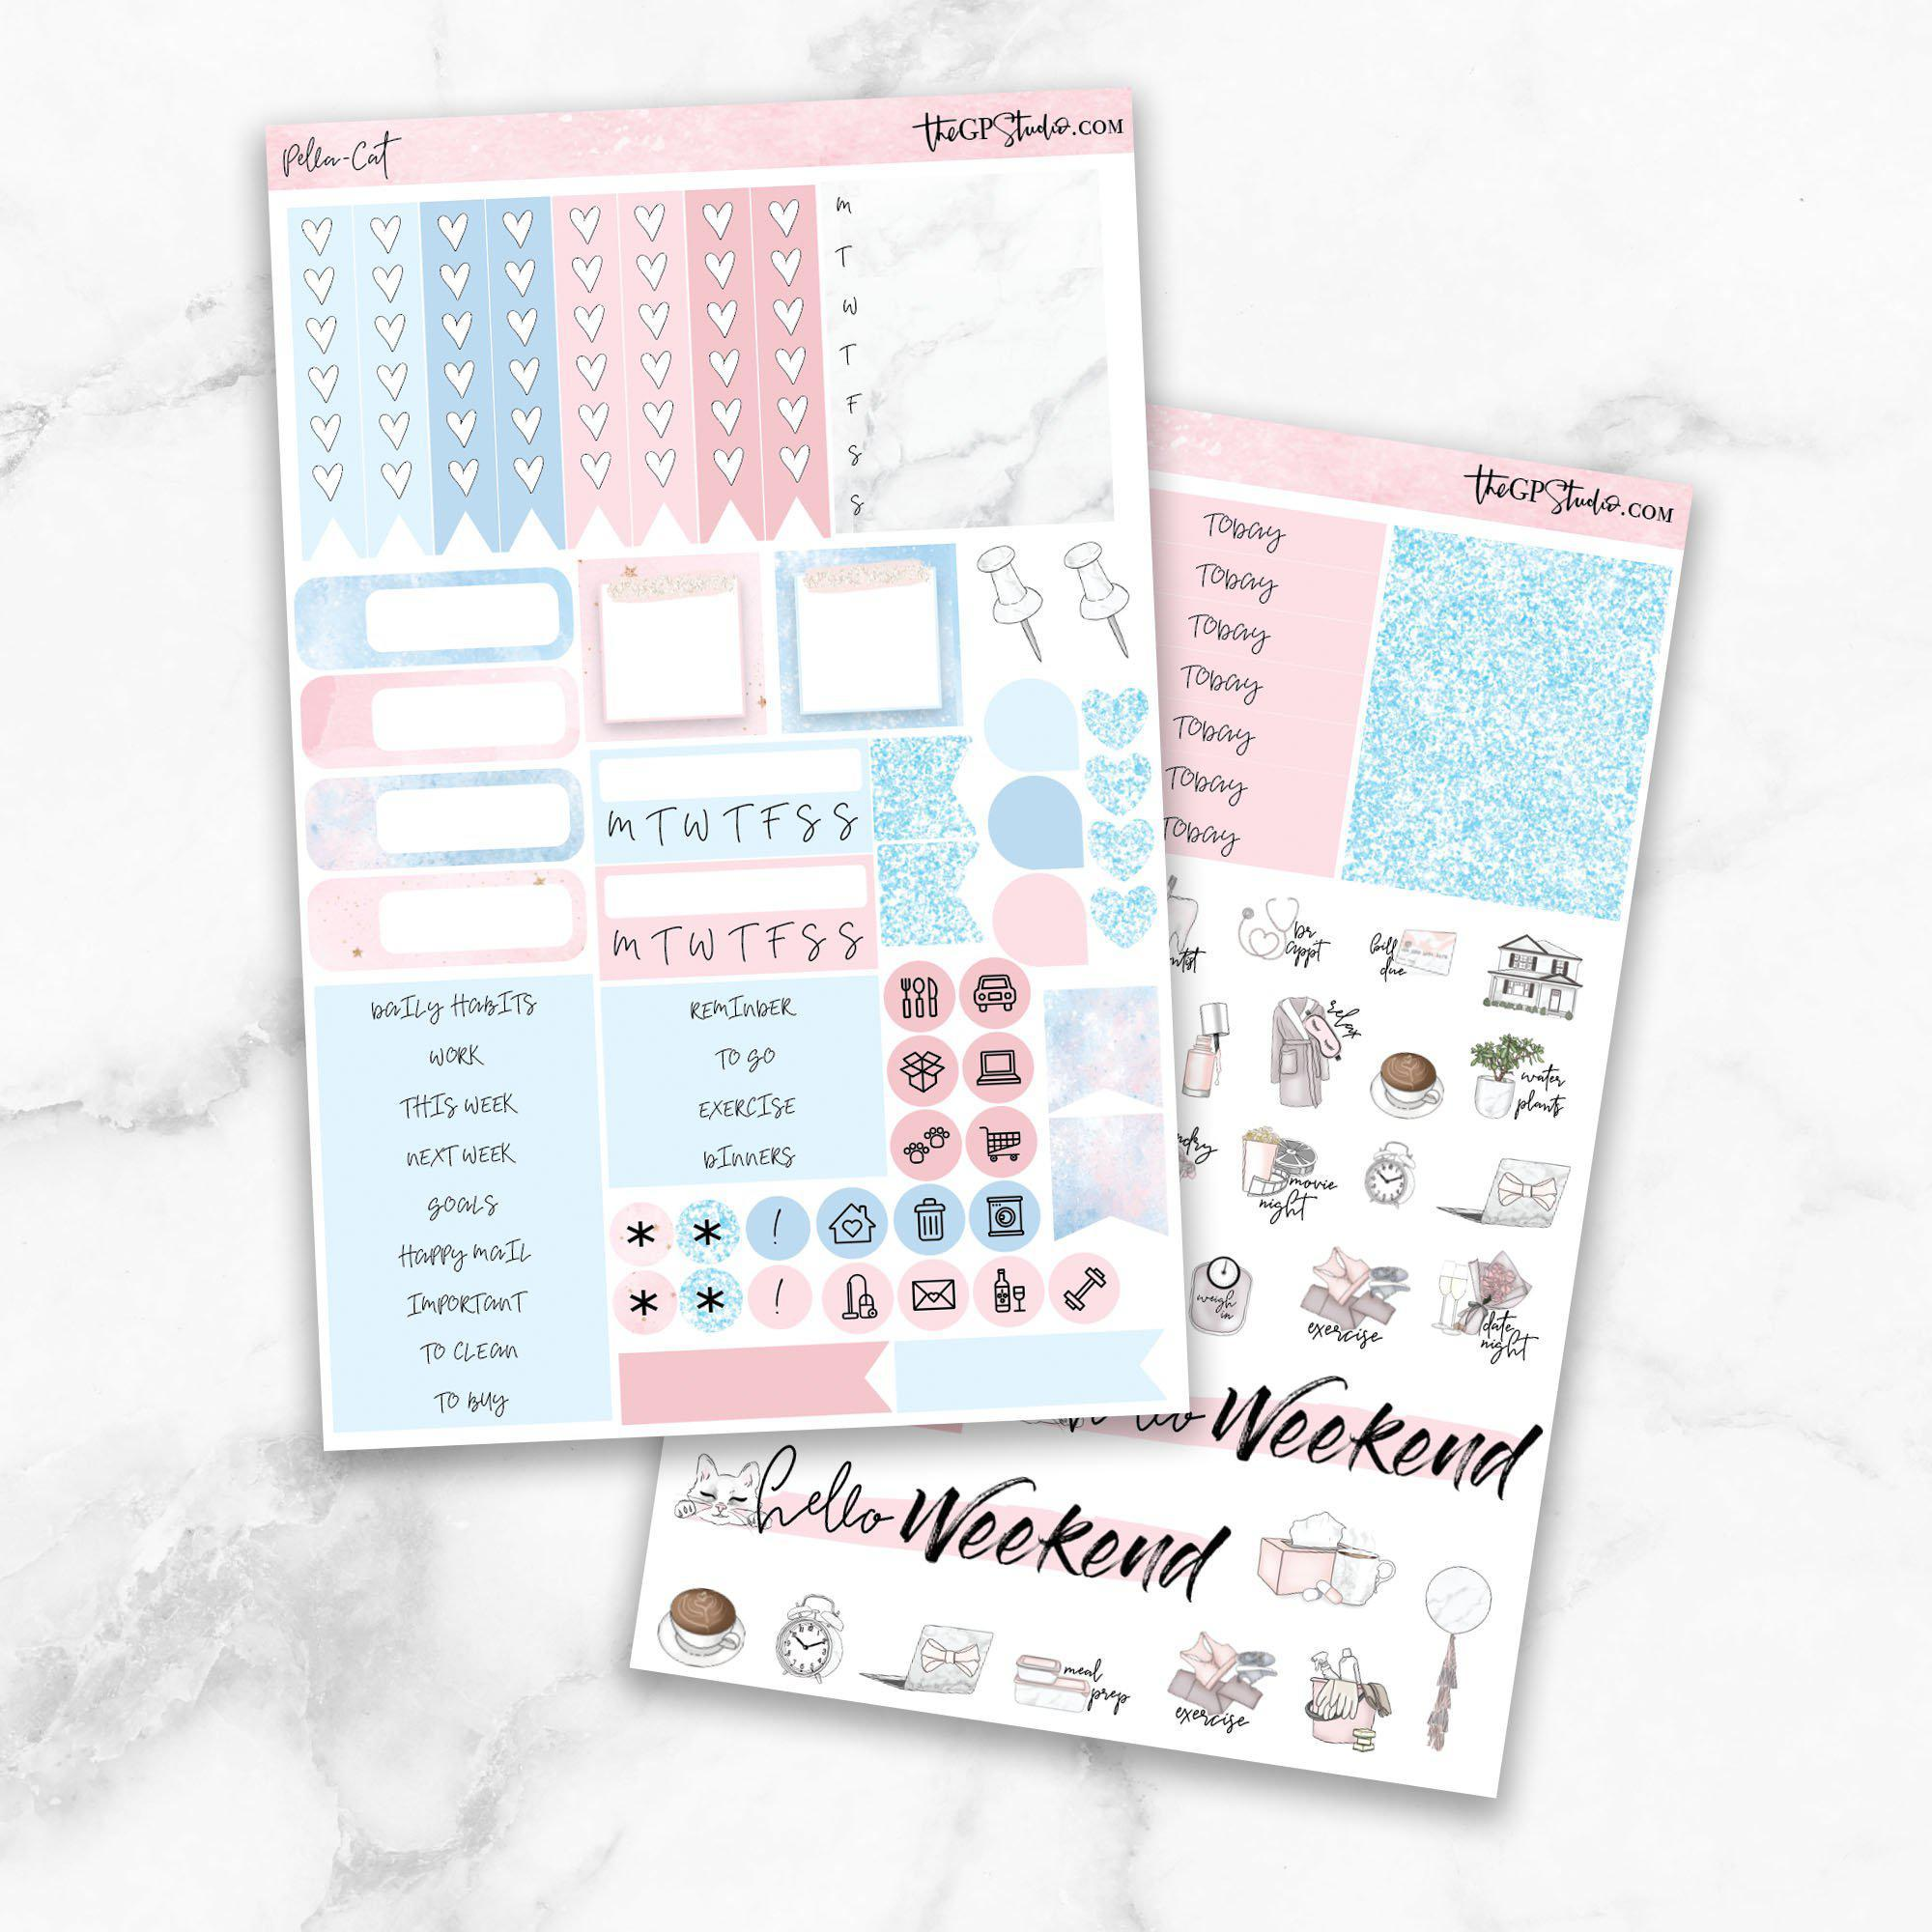 PELLA CAT KIT Functional Planner Sticker Kit-The GP Studio